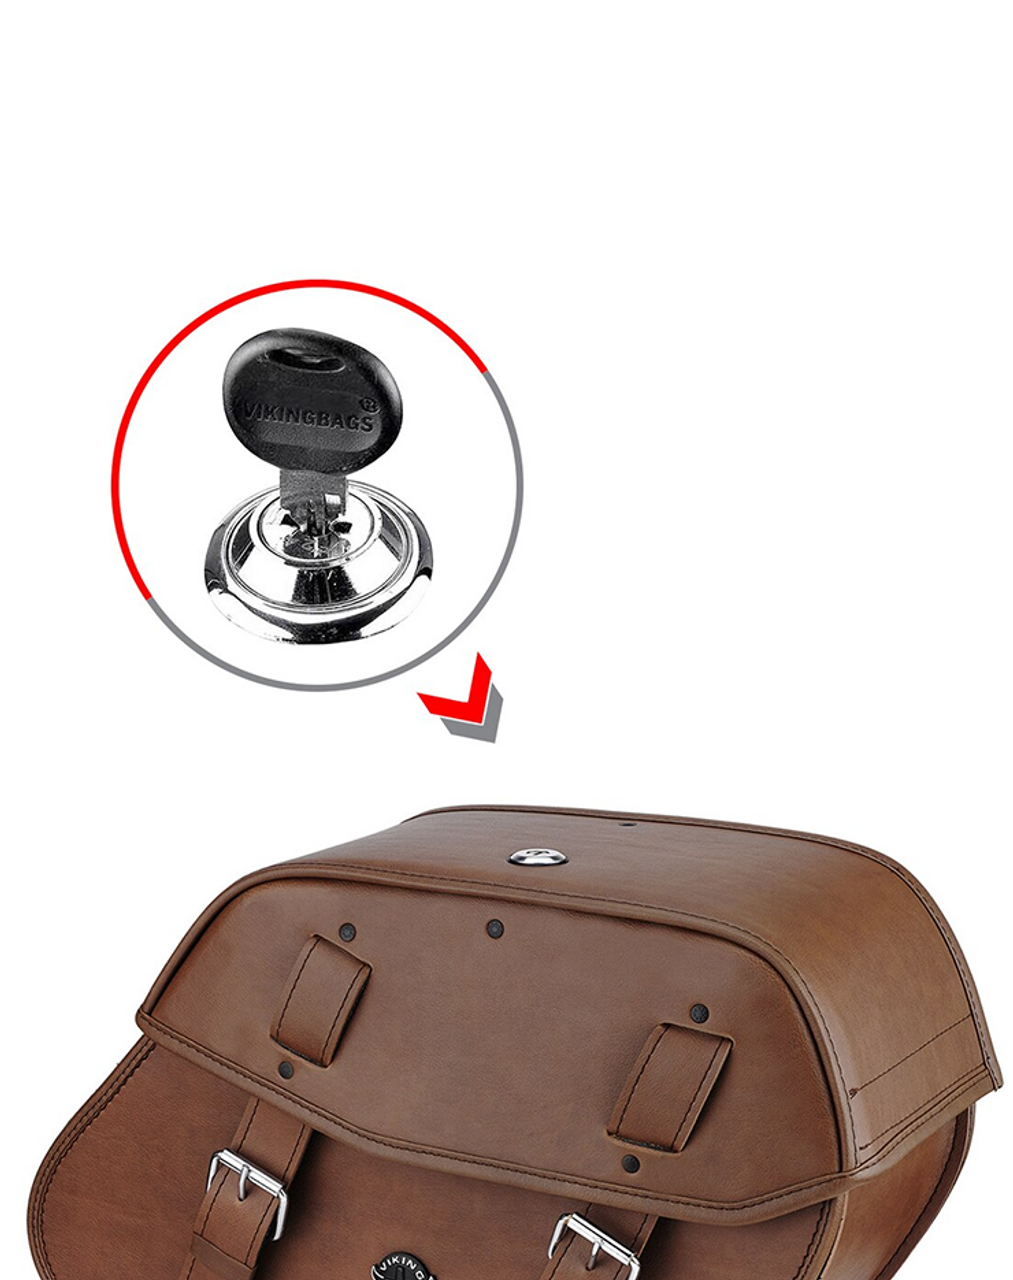 VikingBags Odin Brown Medium Double Strap Leather Motorcycle Saddlebags For Harley Softail Low Rider S FXLRS Key lockable View